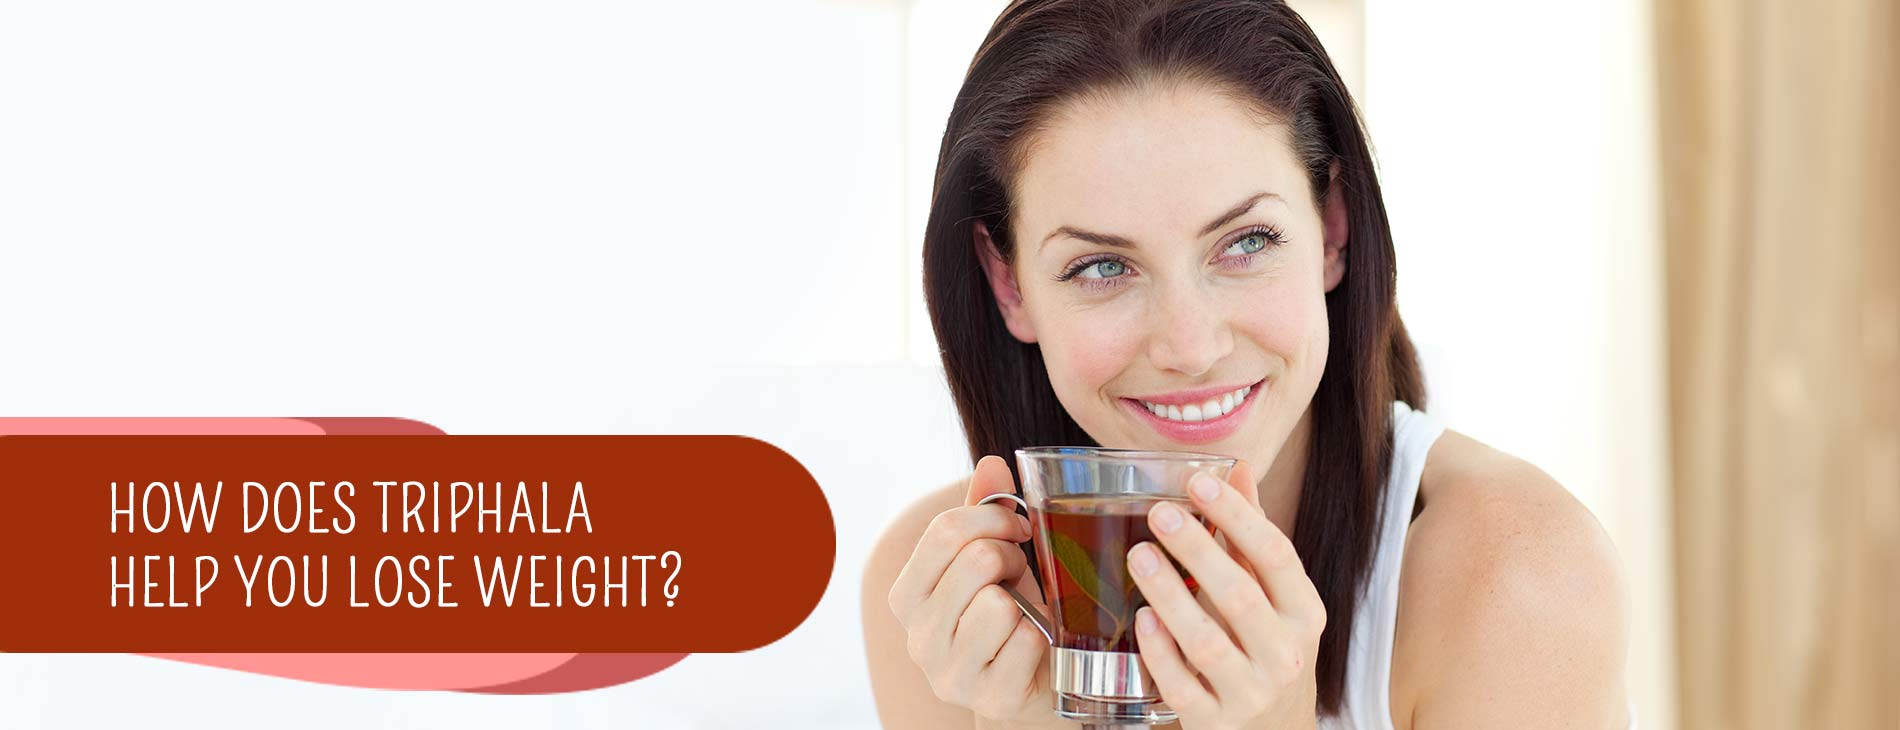 How-Does-Triphala-Help-You-Lose-Weight